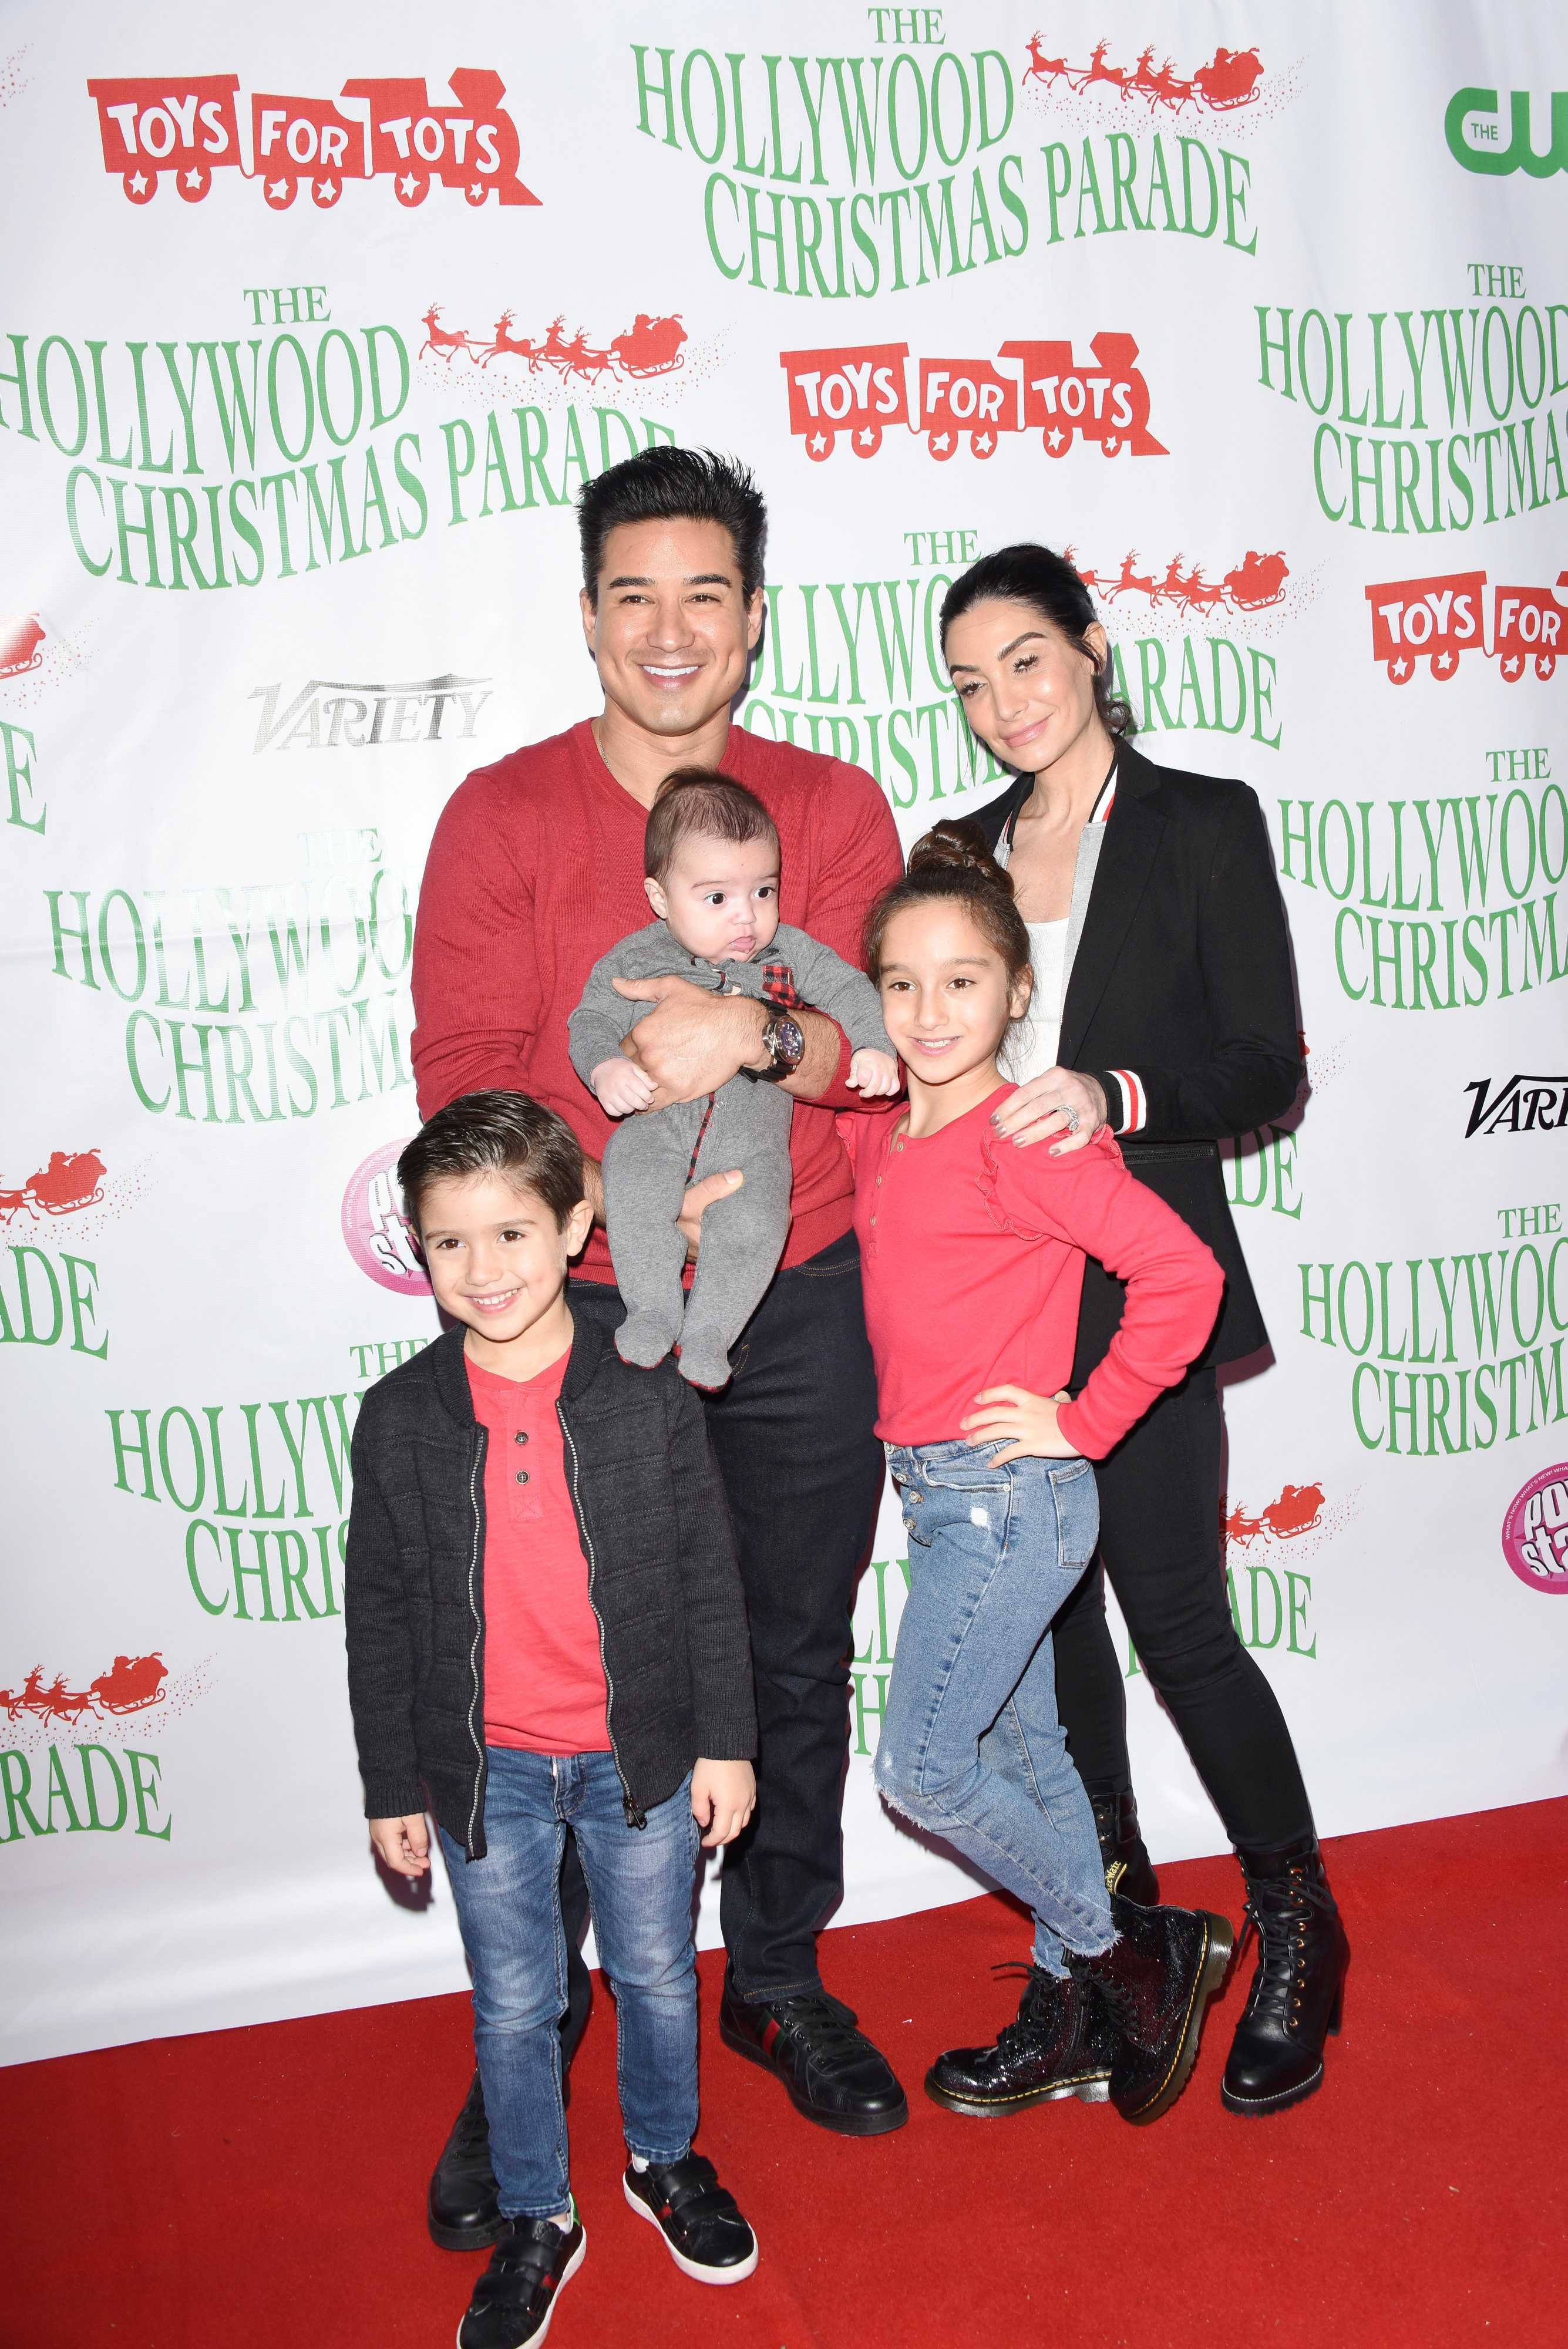 Mario Lopez,Courtney Mazza,Dominic Lopez,Gia Lopez,Santino Lopez attends the 88th annual Hollywood Christmas Parade